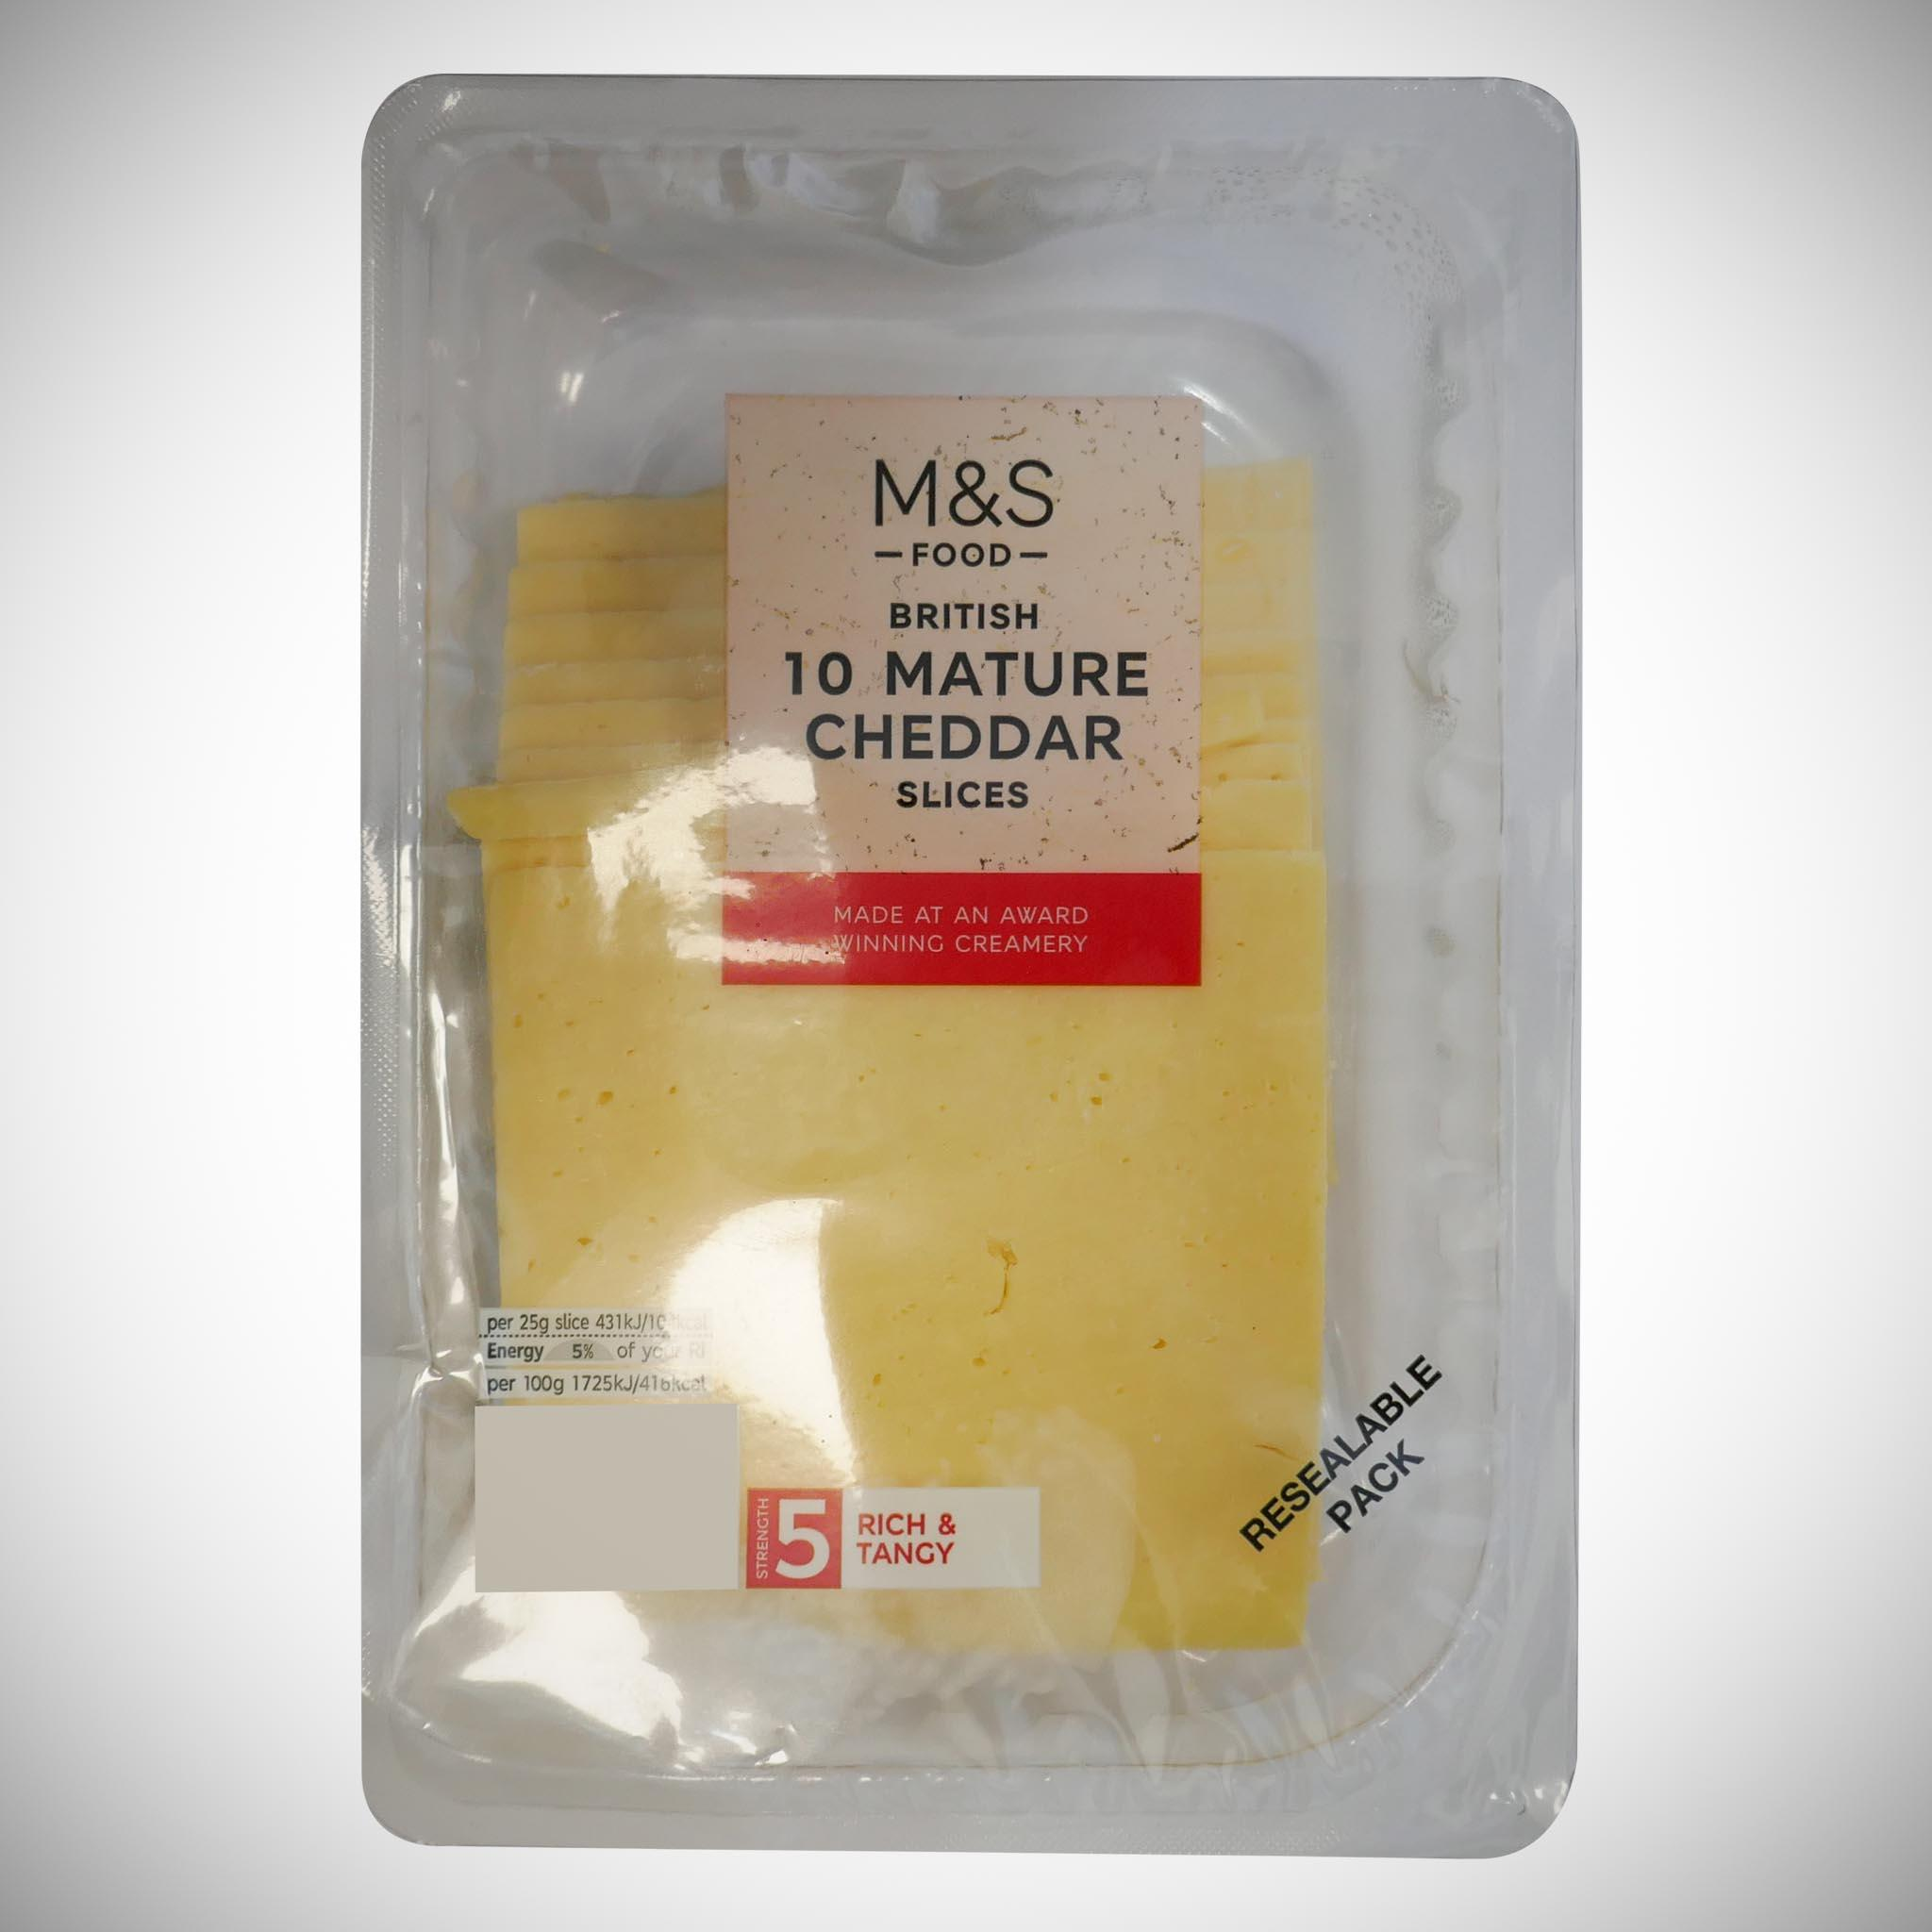 British 10 Mature Cheddar Slices 250g